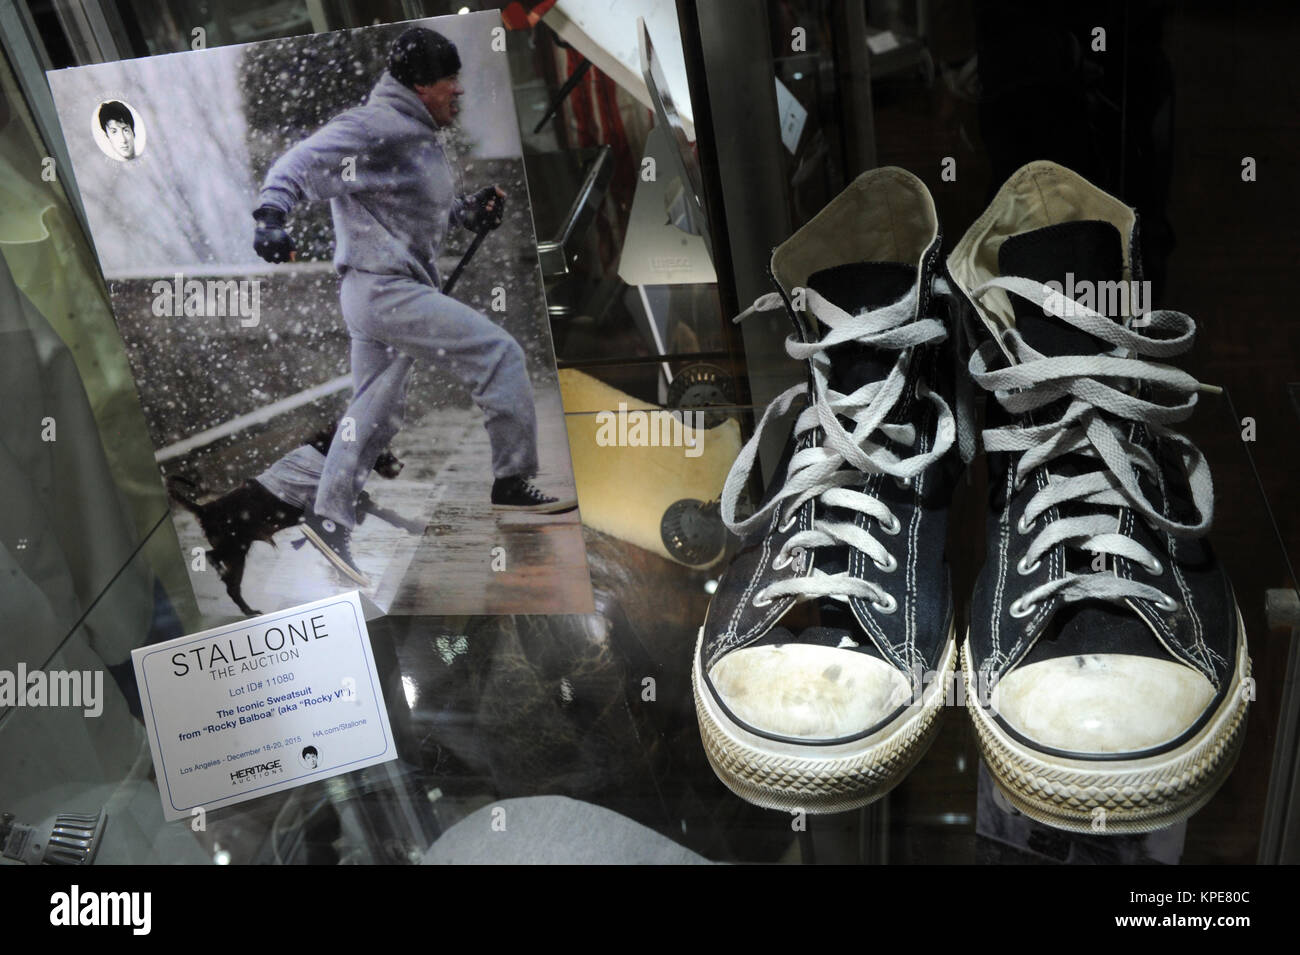 NEW YORK, NY - OCTOBER 21: A pair of shoes worn by actor Sylvester Stallone in the film' Rocky VI' on display - Stock Image